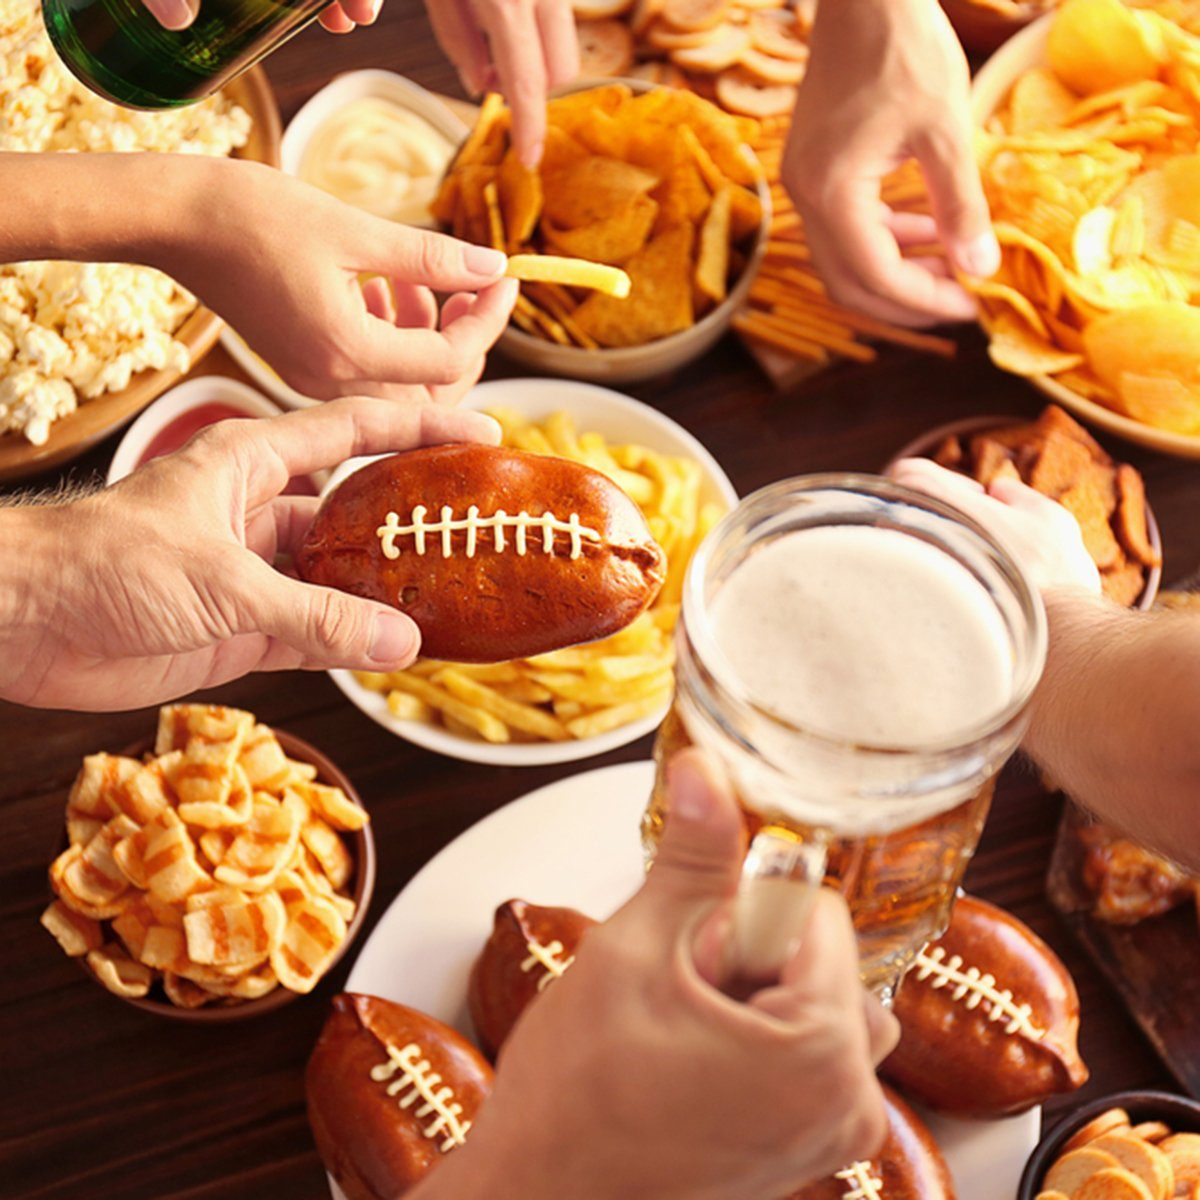 Close up view of hands taking snacks from plates during party; Shutterstock ID 552645409